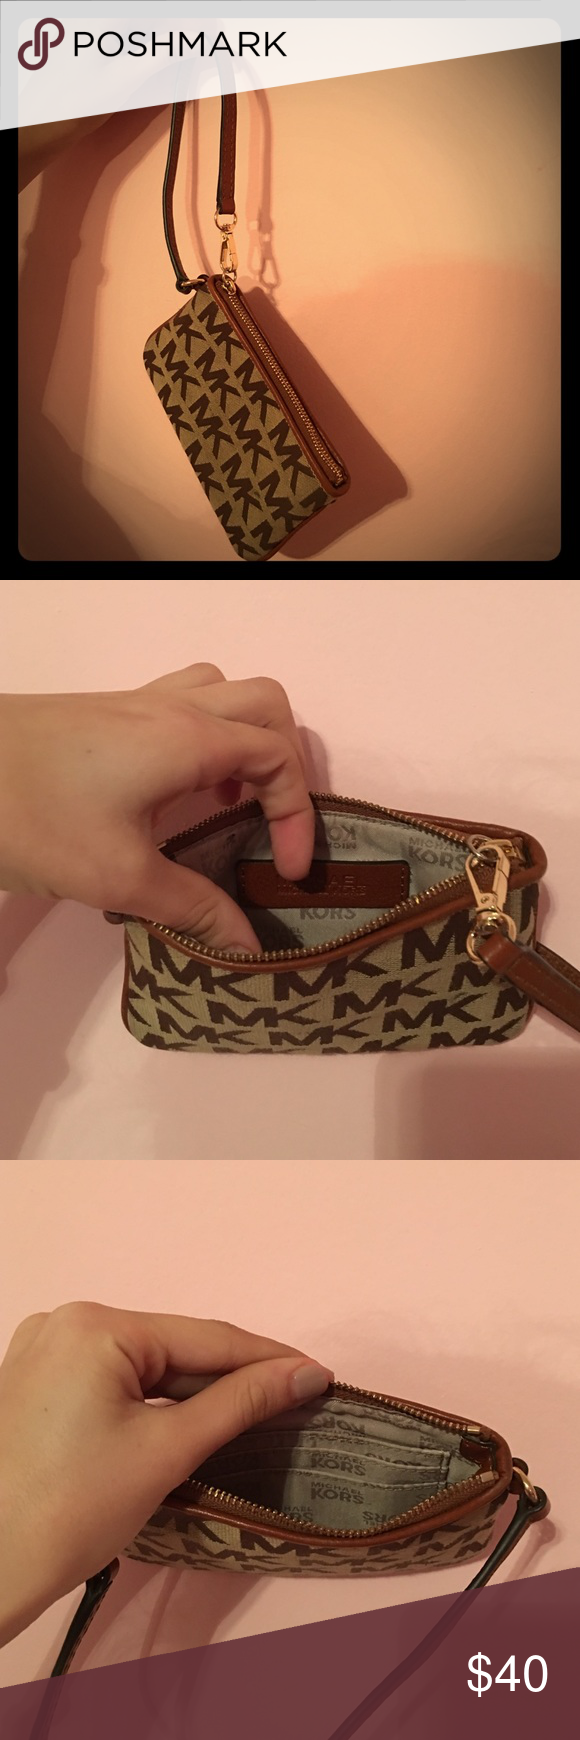 Authentic Micahel Kors Wristlet wallet/cardholder. used once, just like new! Tan/brown Leather with cream inside and gold accent details. Michael Kors Accessories Key & Card Holders